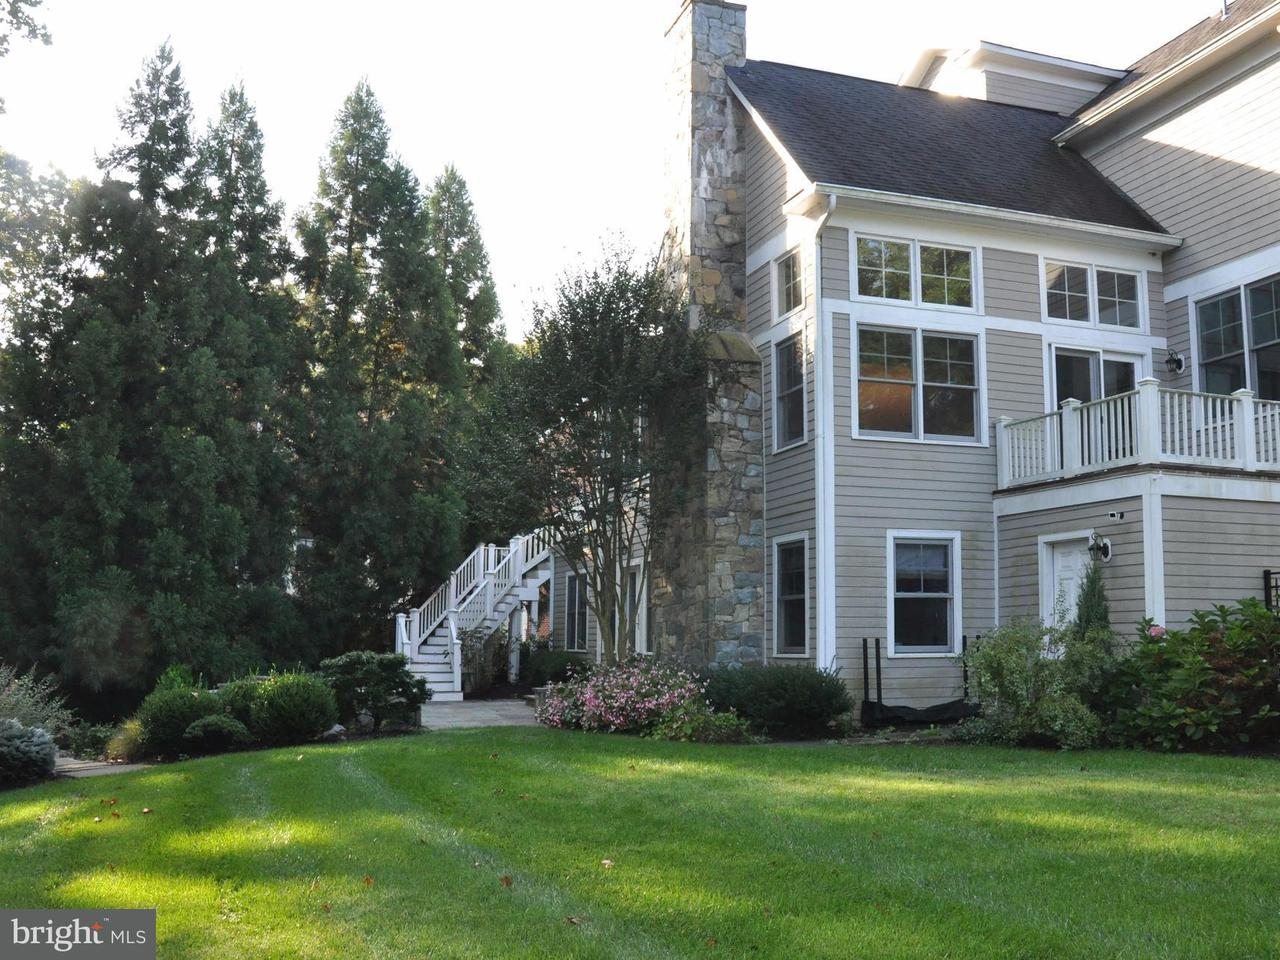 Single Family Home for Sale at 8701 FENWAY Drive 8701 FENWAY Drive Bethesda, Maryland 20817 United States